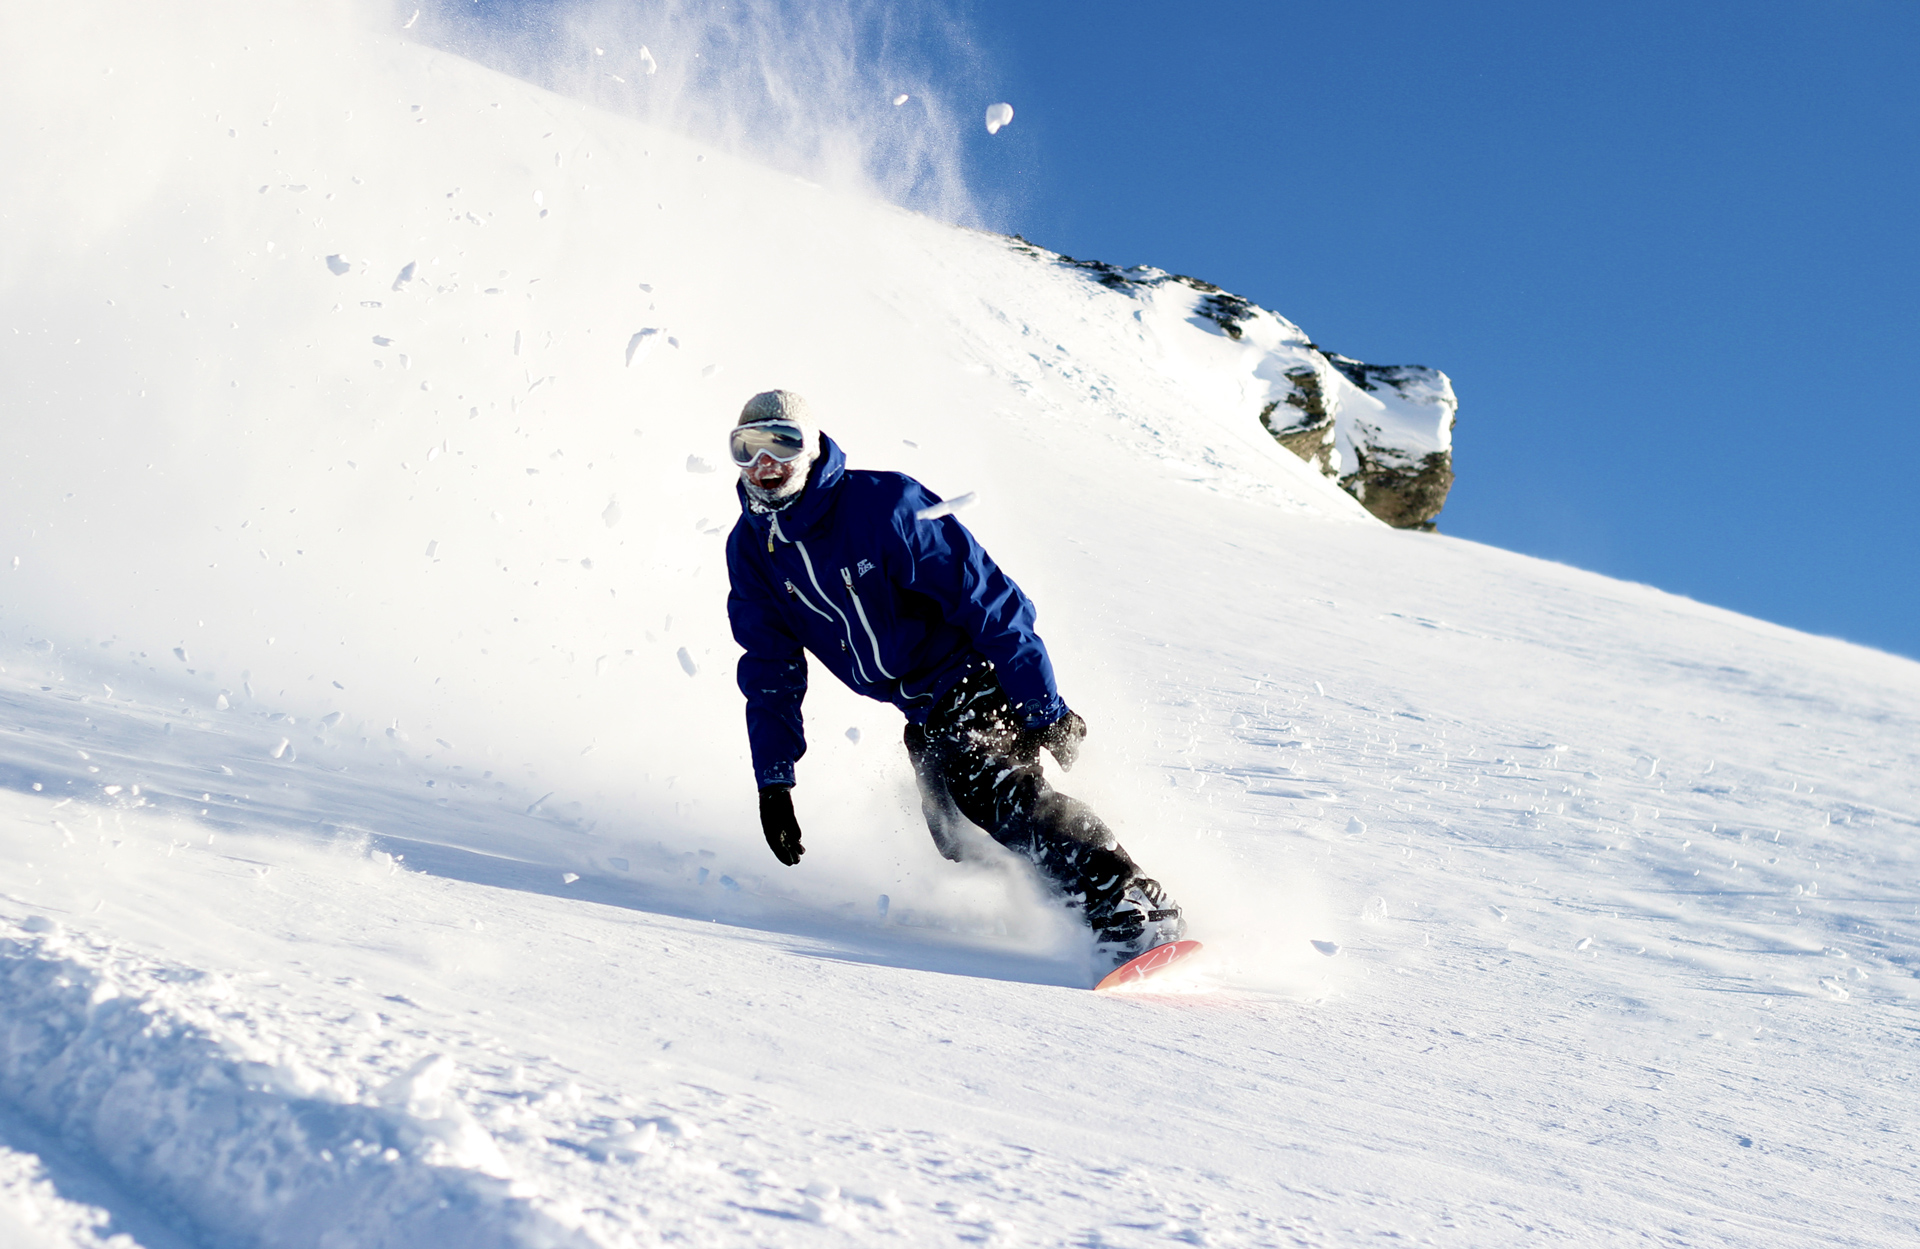 Cardrona-Snowboarding in New Zealand-Powder-Freshsnow